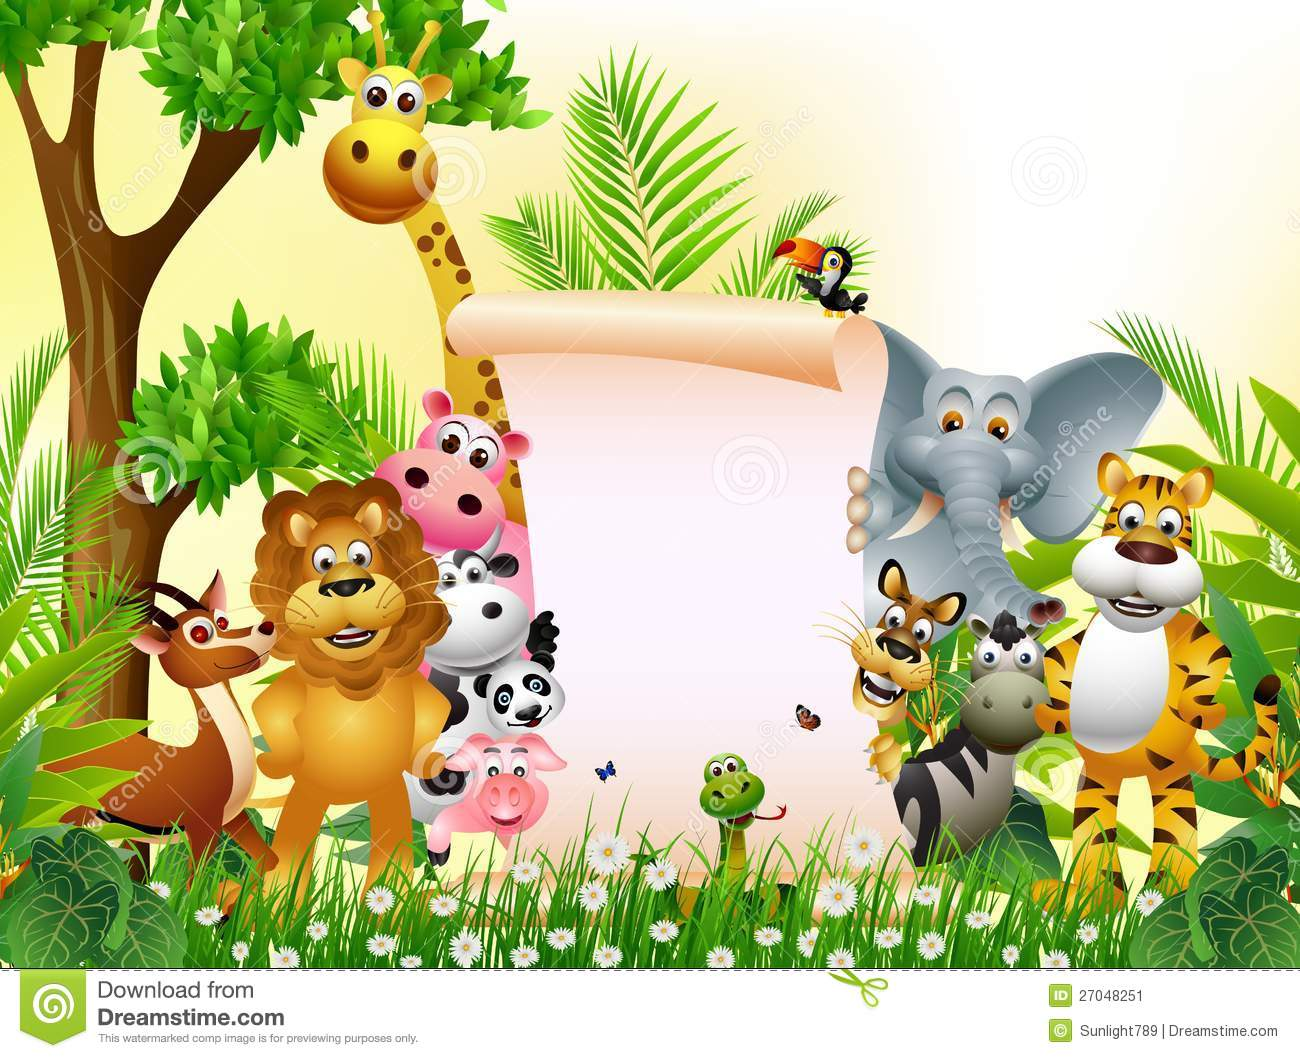 cartoon animal blank sign illustration vector clipart animals wildlife funny background mammal illustrations safari preview mascot